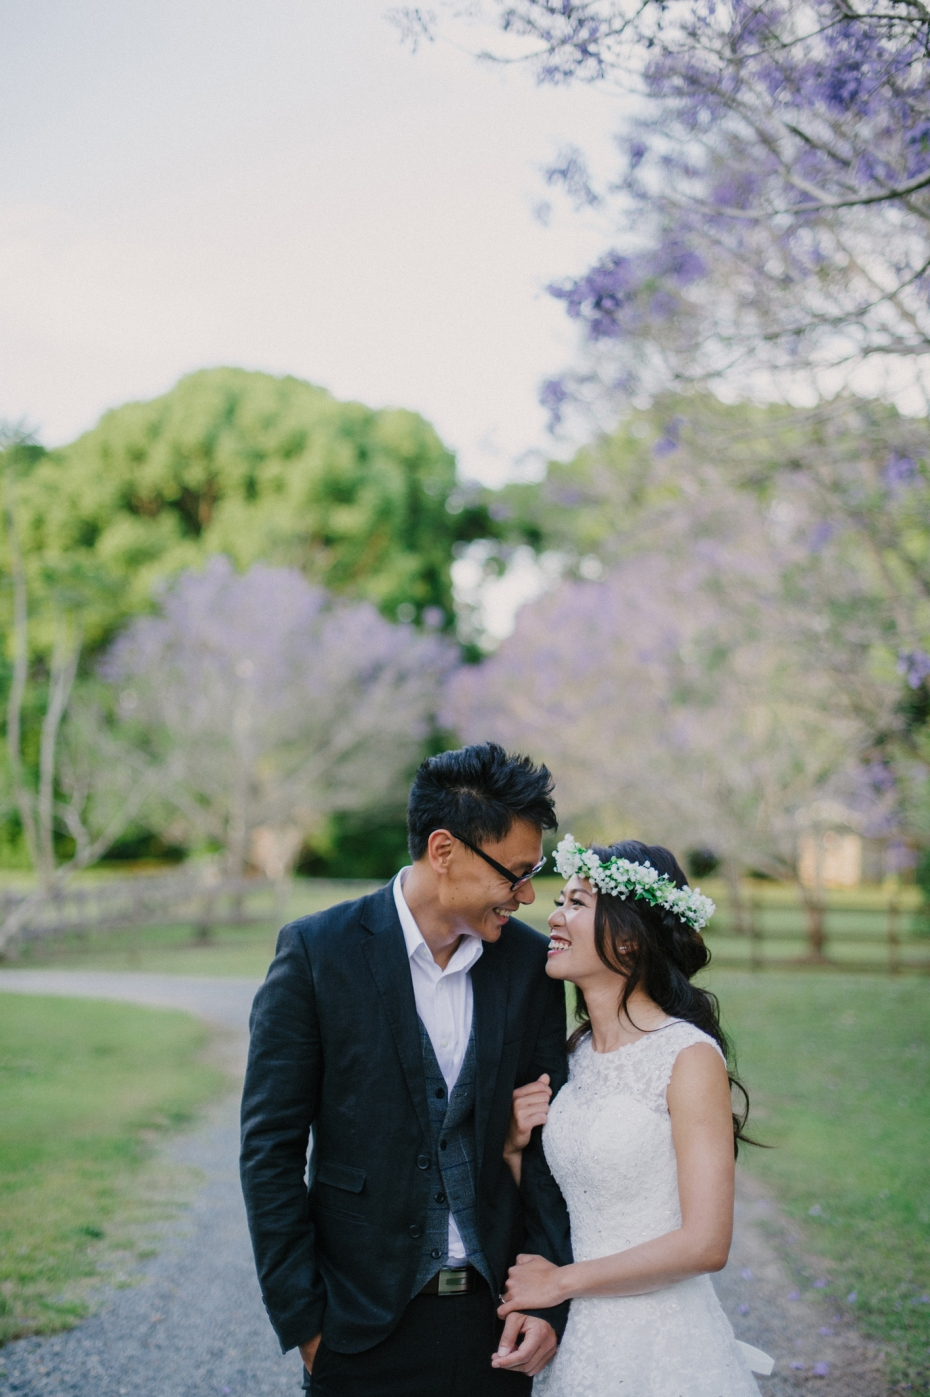 003-ed-janet-currumbin-wedding_sophie-baker-photography